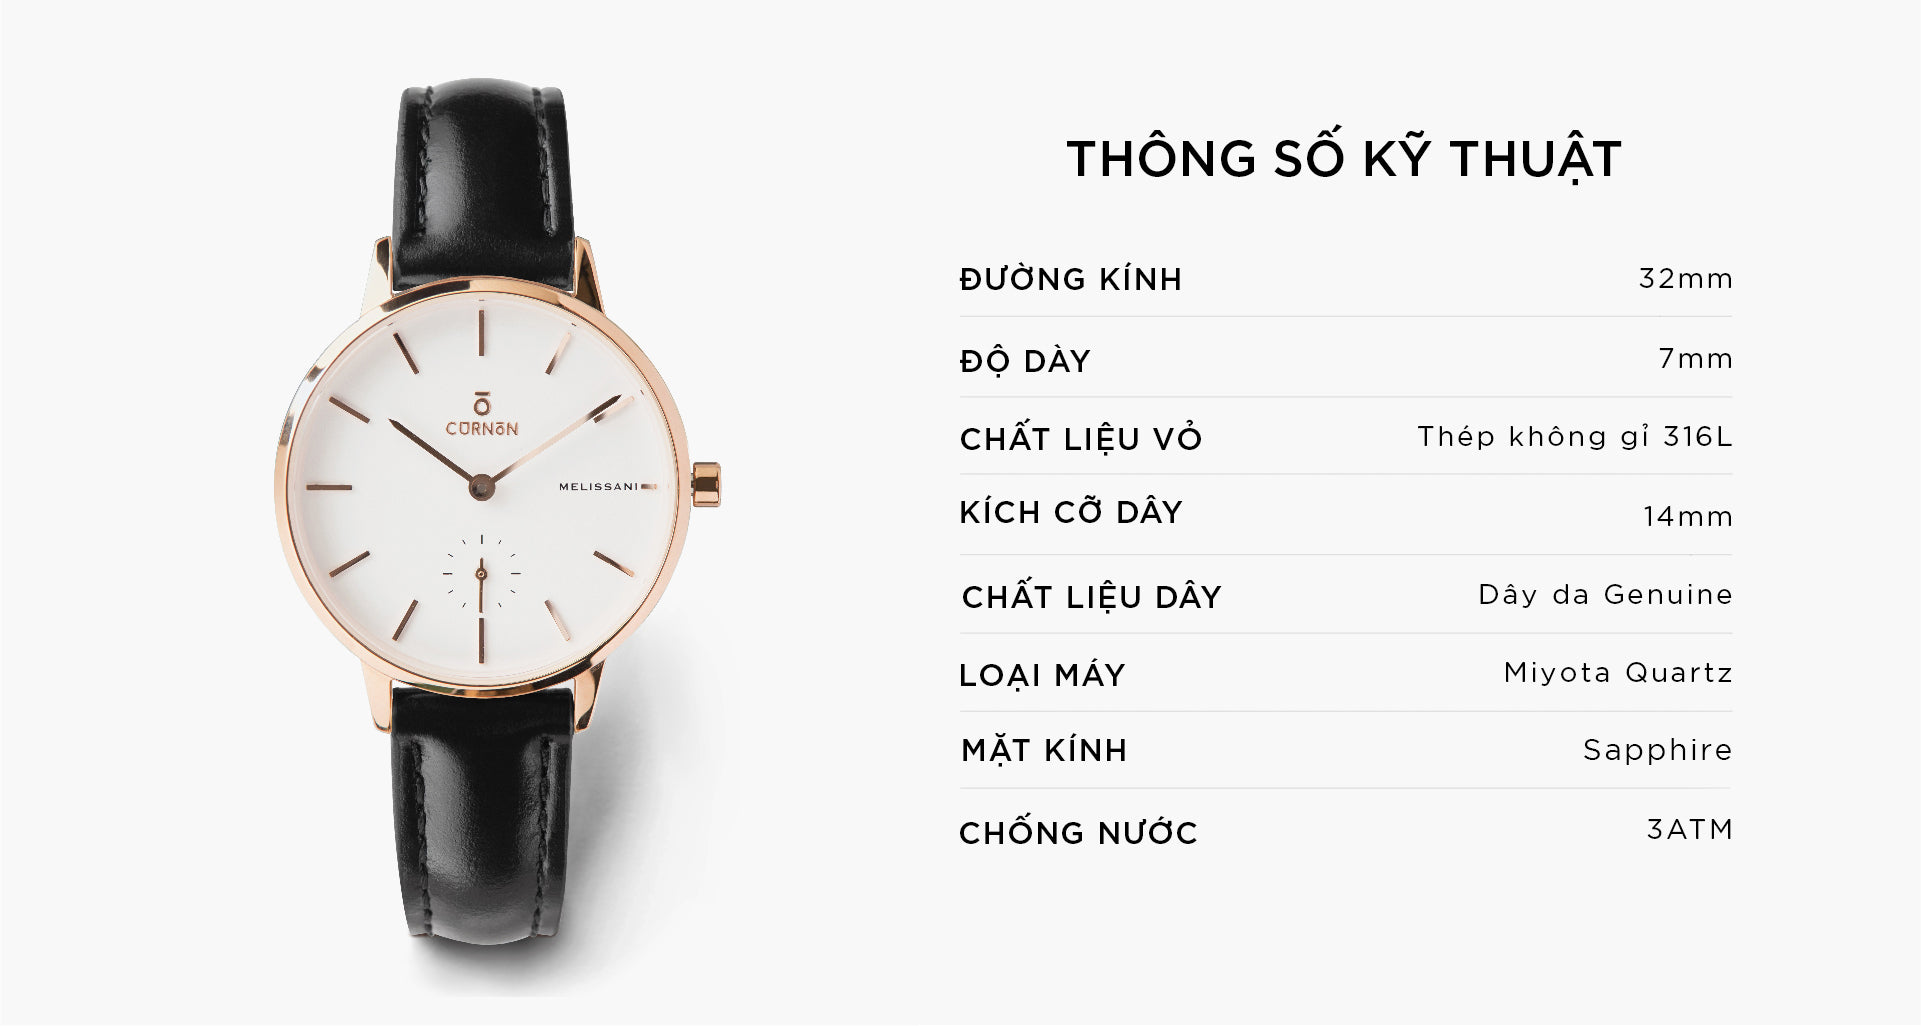 Đồng hồ thời trang Melissani Rosegold - Abyss - Curnon Watch